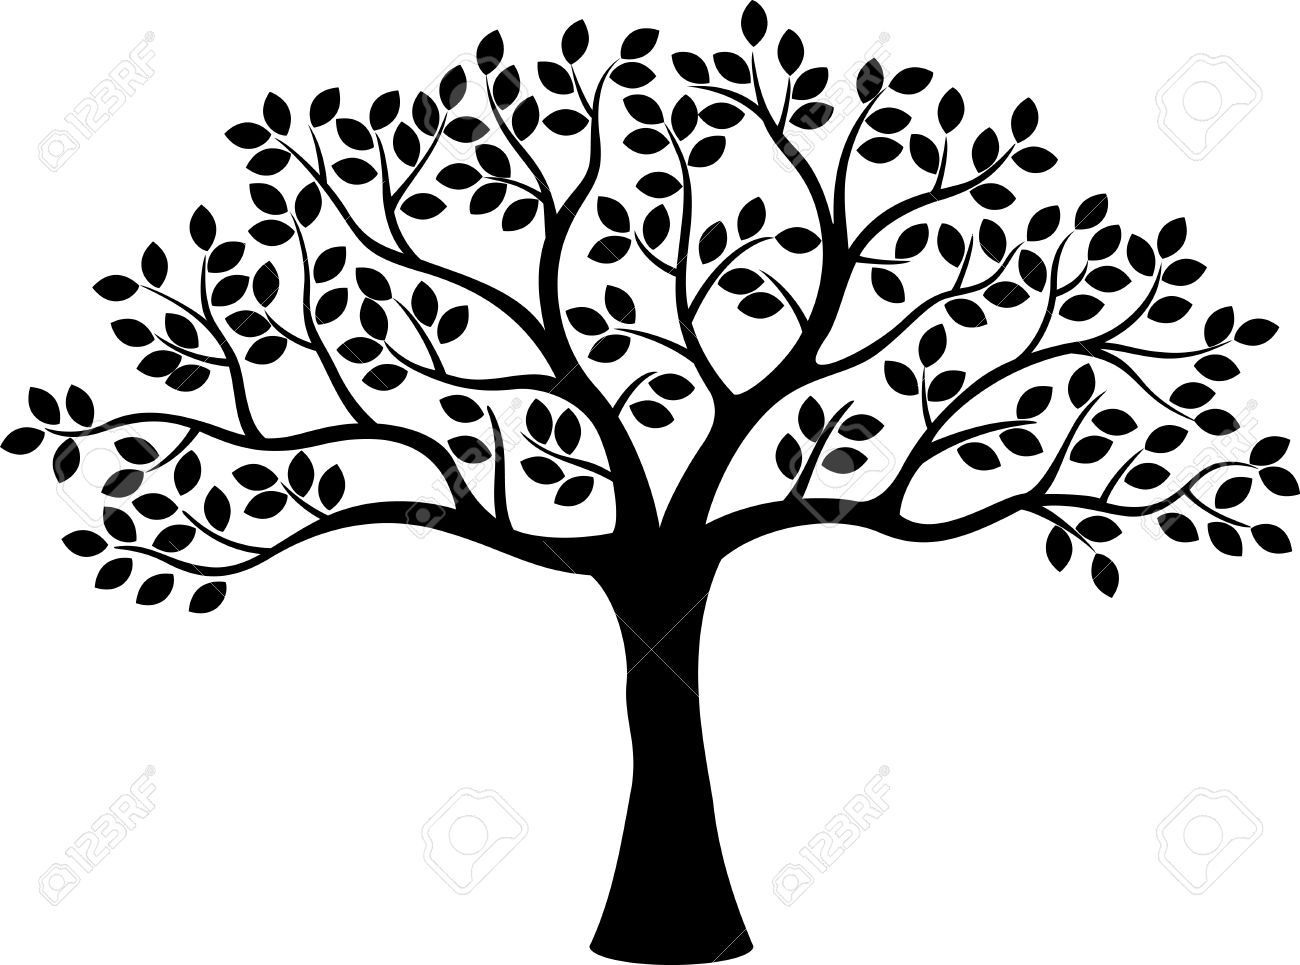 silhouette tree vector at getdrawings com free for personal use rh getdrawings com tree vector art tree vector image